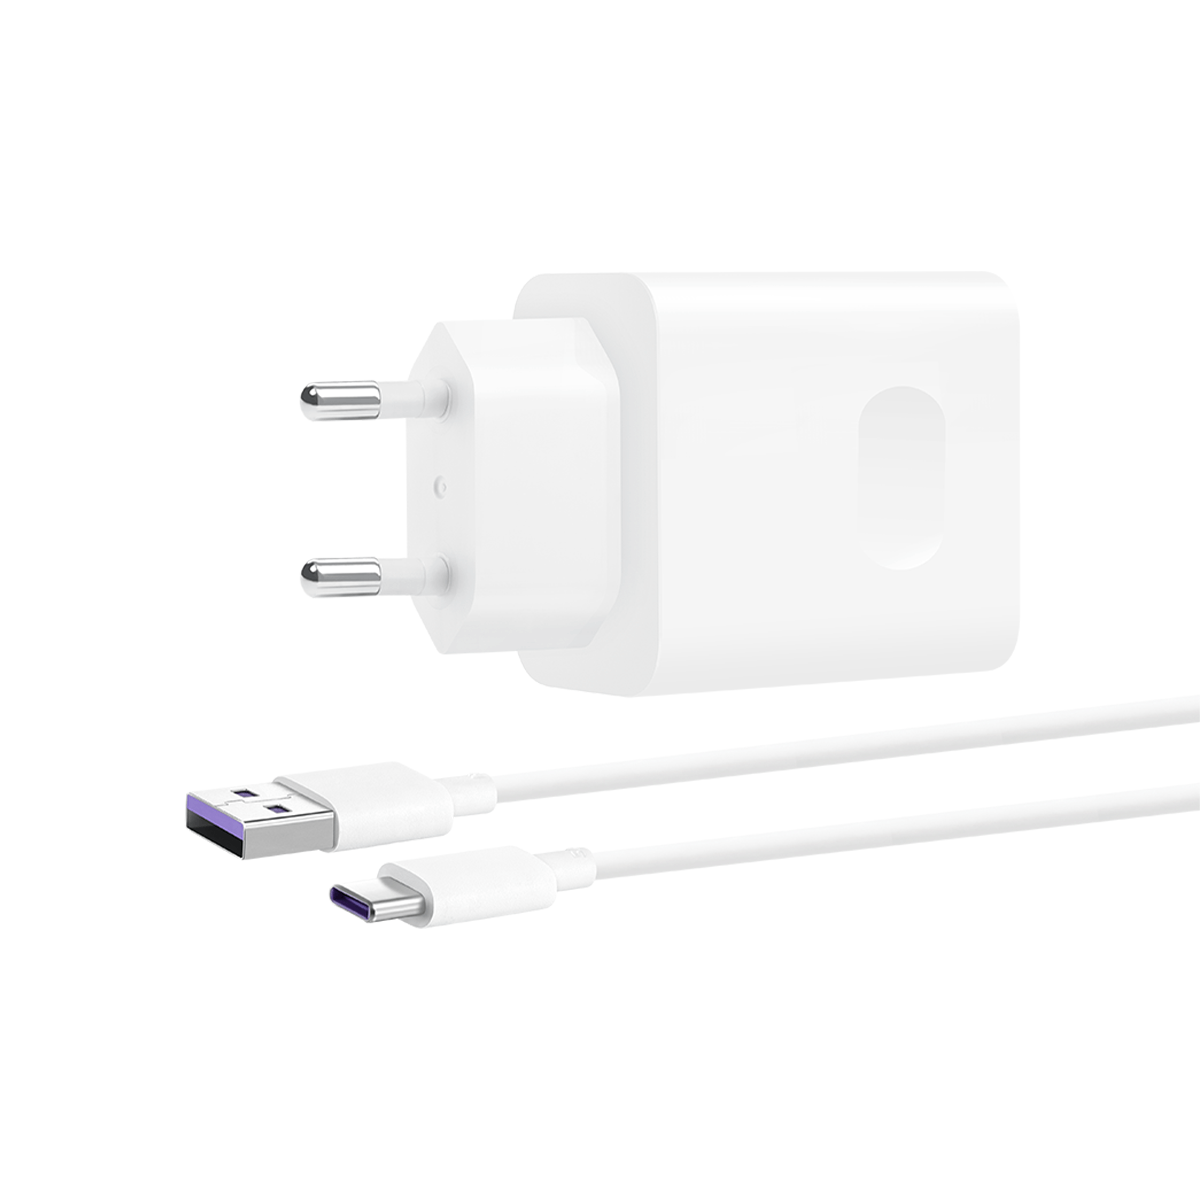 HUAWEI SuperCharge (Max 40W)Adapters